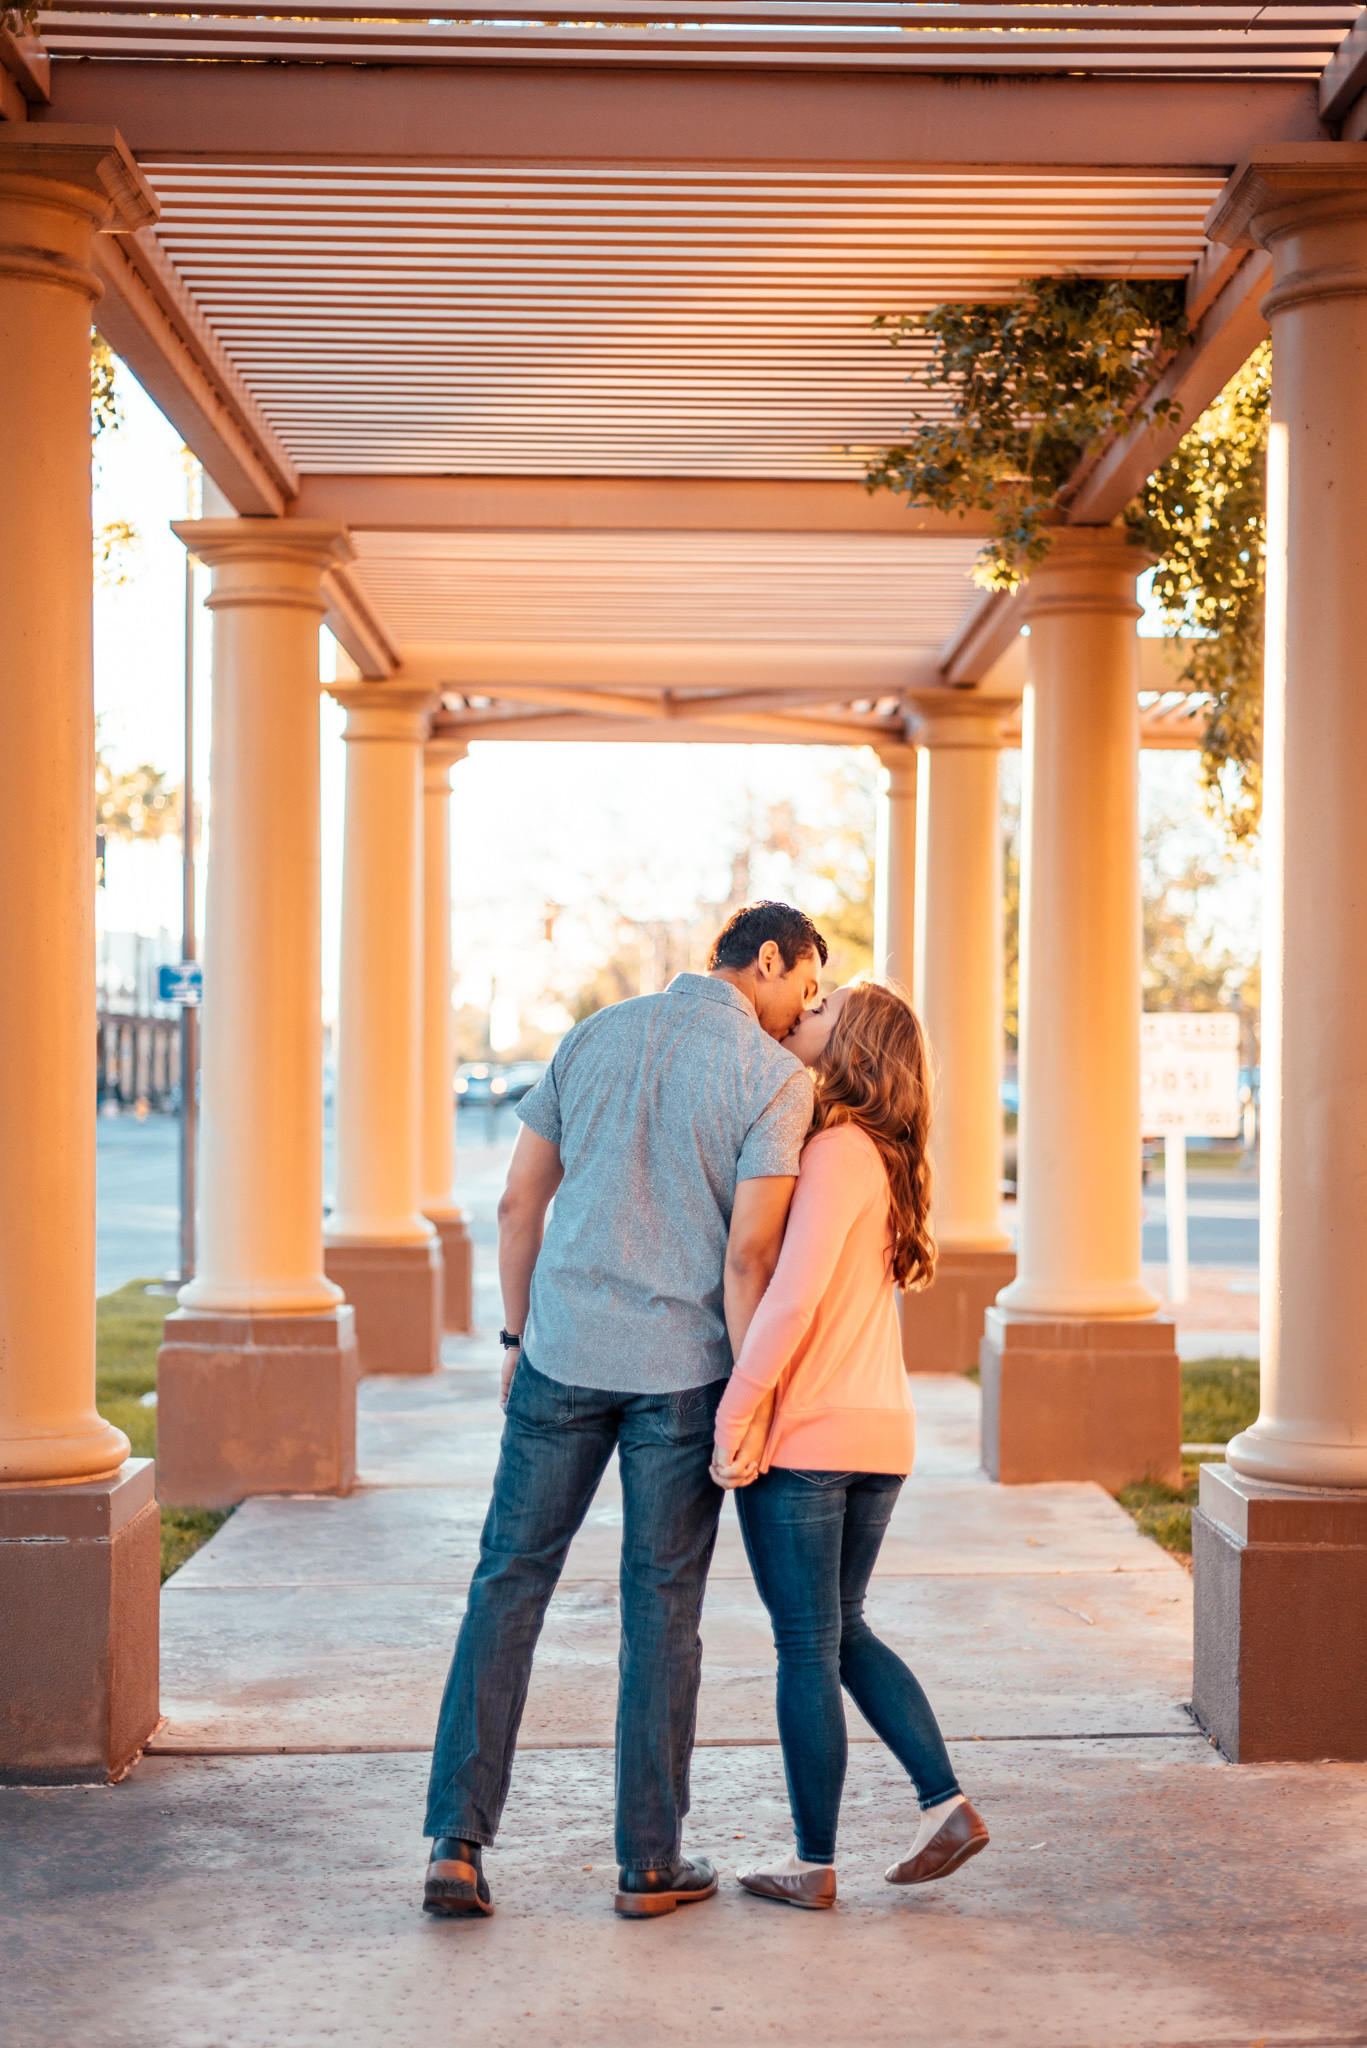 wedding-engagement-photos-chandler-az-11.jpg